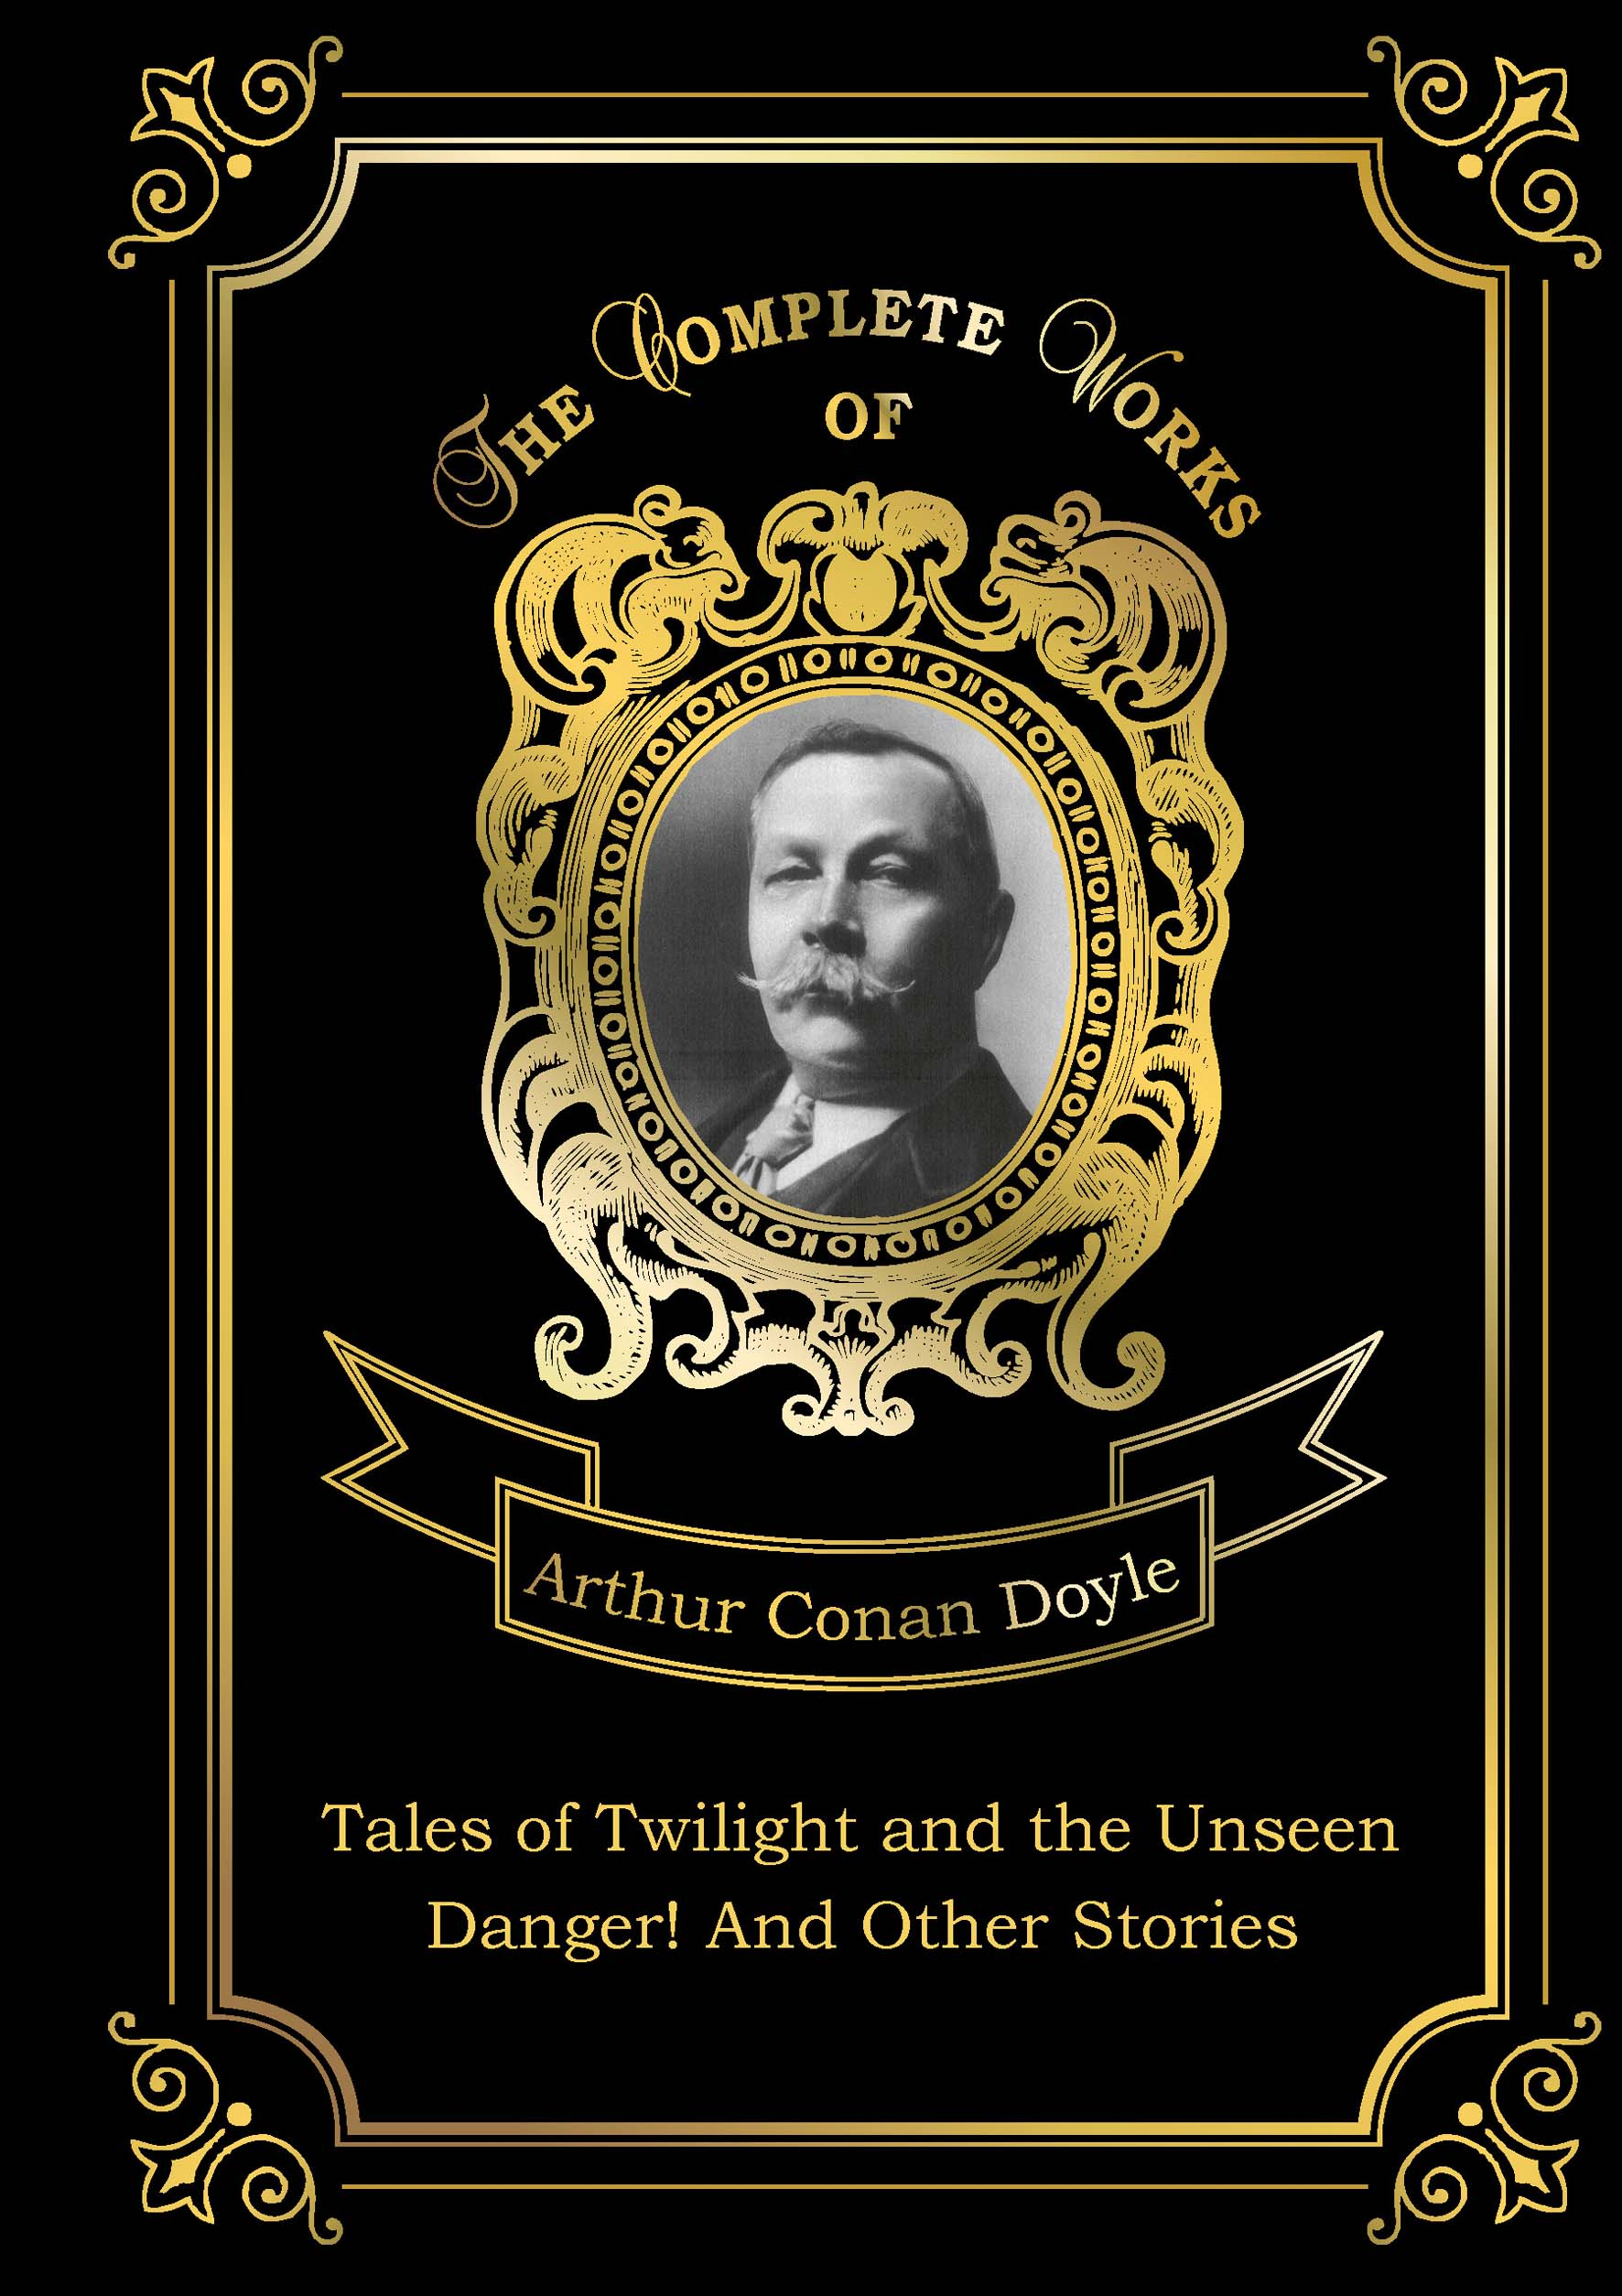 A. C. Doyle Tales of Twilight and the Unseen doyle arthur conan tales of twilight and the unseen and danger